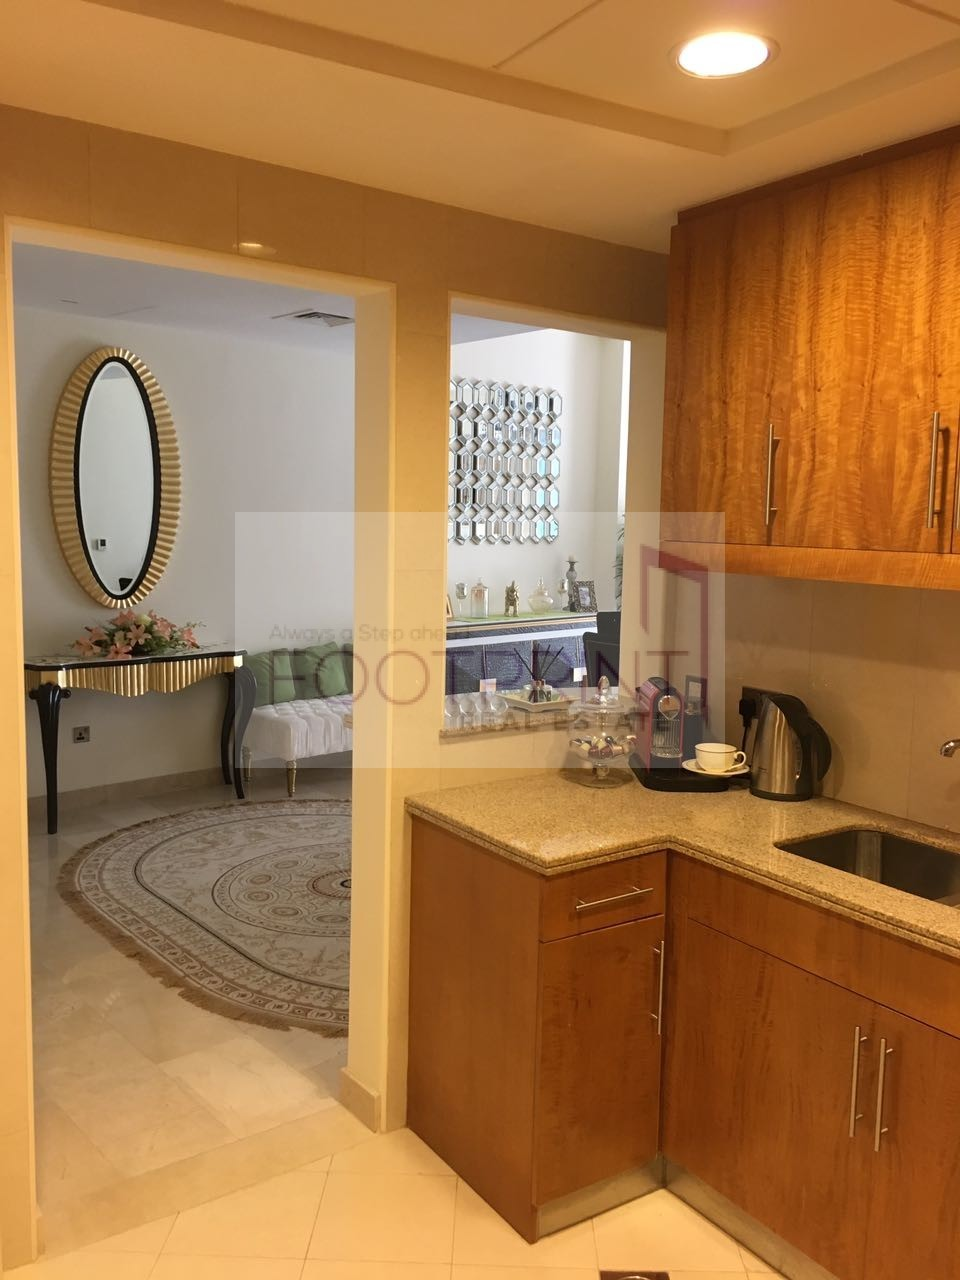 Final Best Offer For 2Br+Storage Vacant